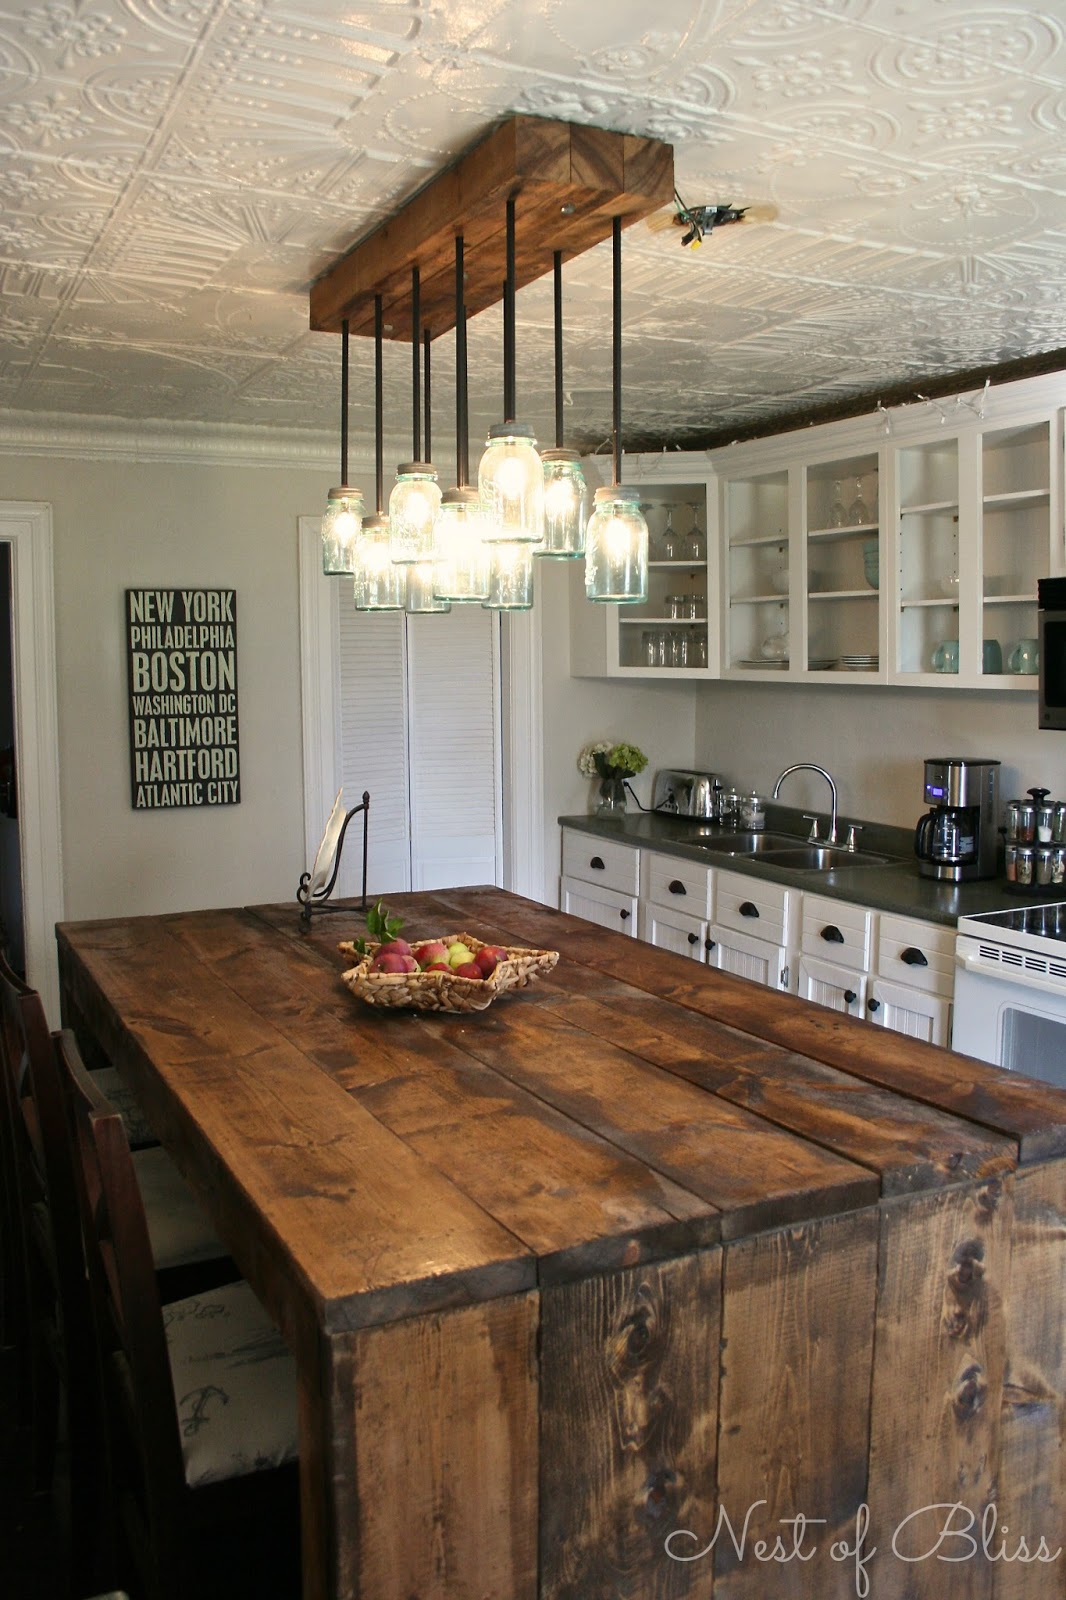 11 tin ceiling heavy wood unique atmosphere - Rustic Design Ideas